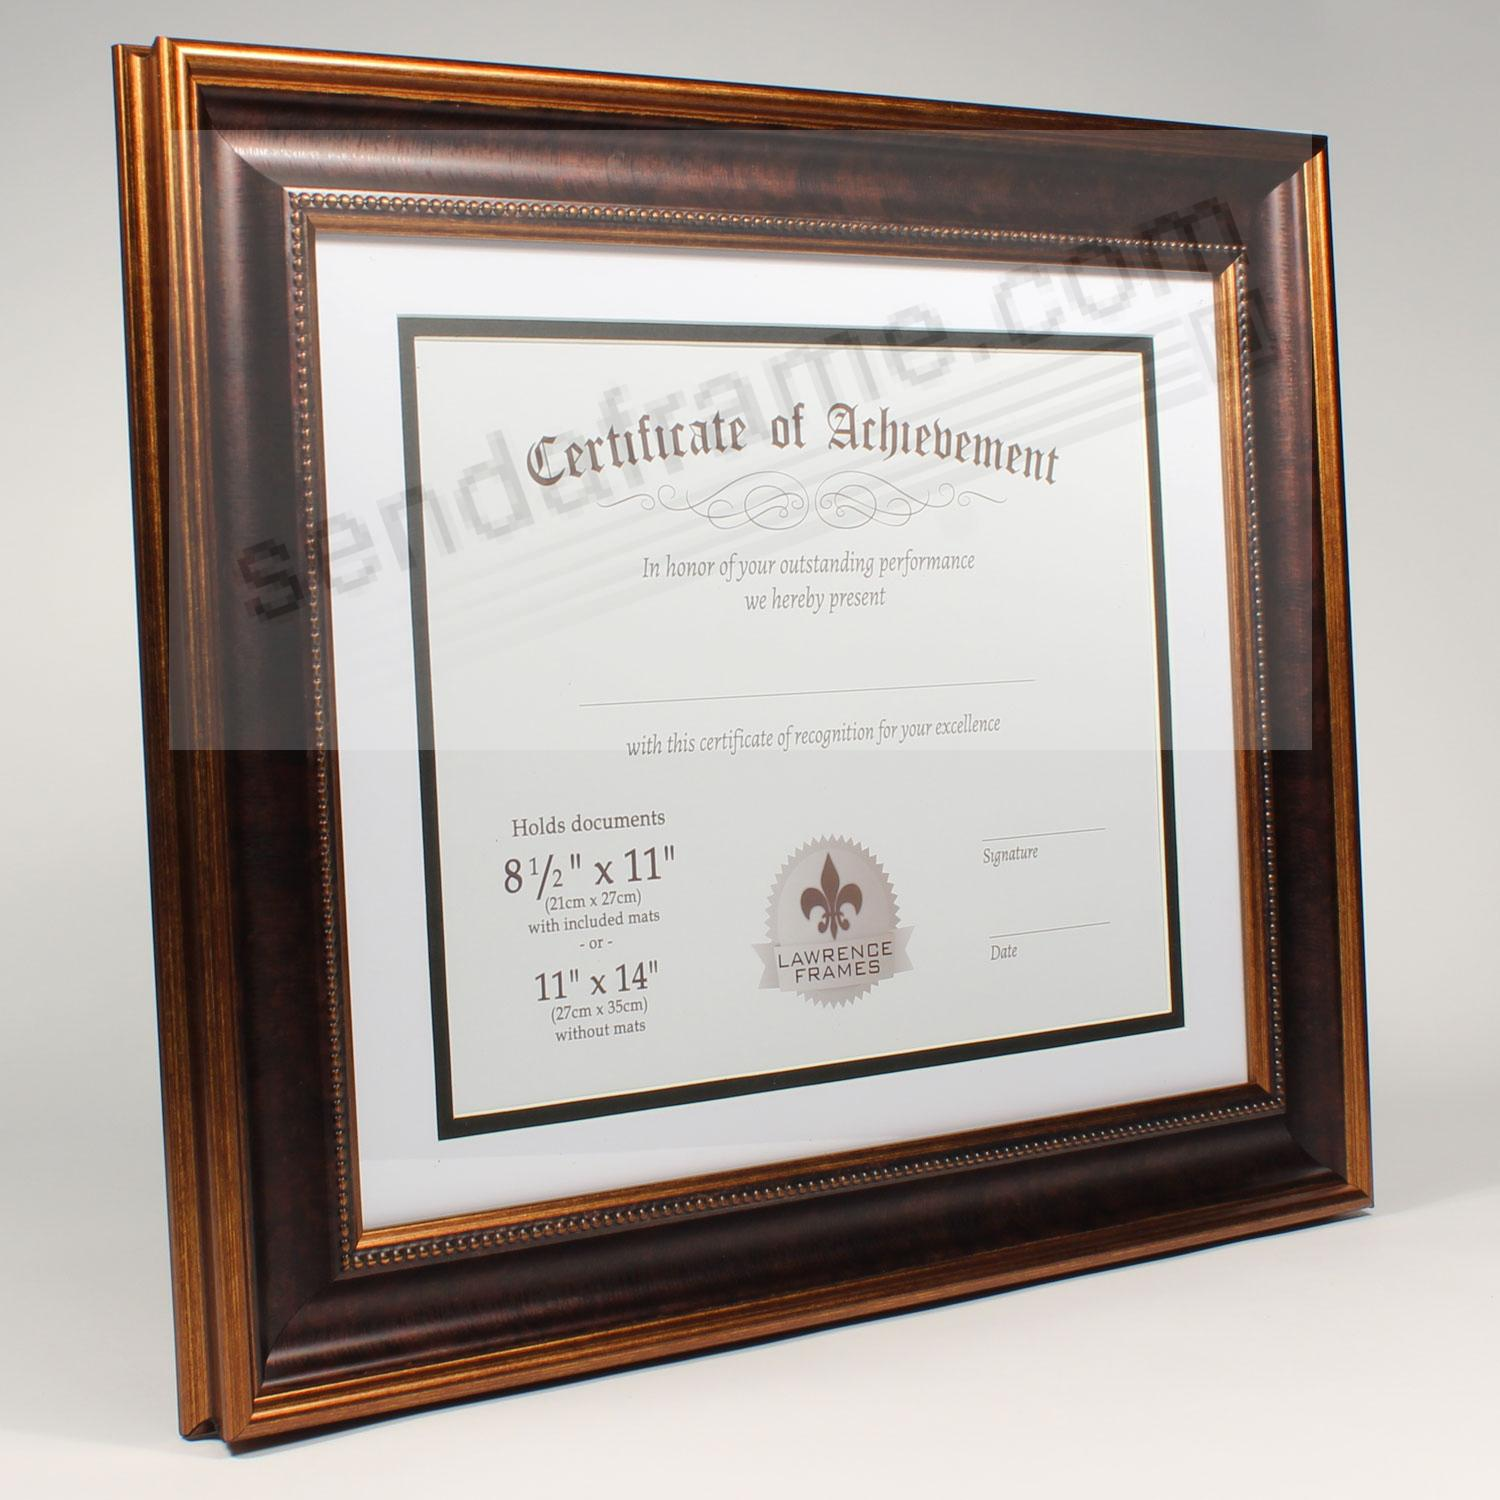 dual use bronze beaded document frame 14x1111x8 by lawrence frames